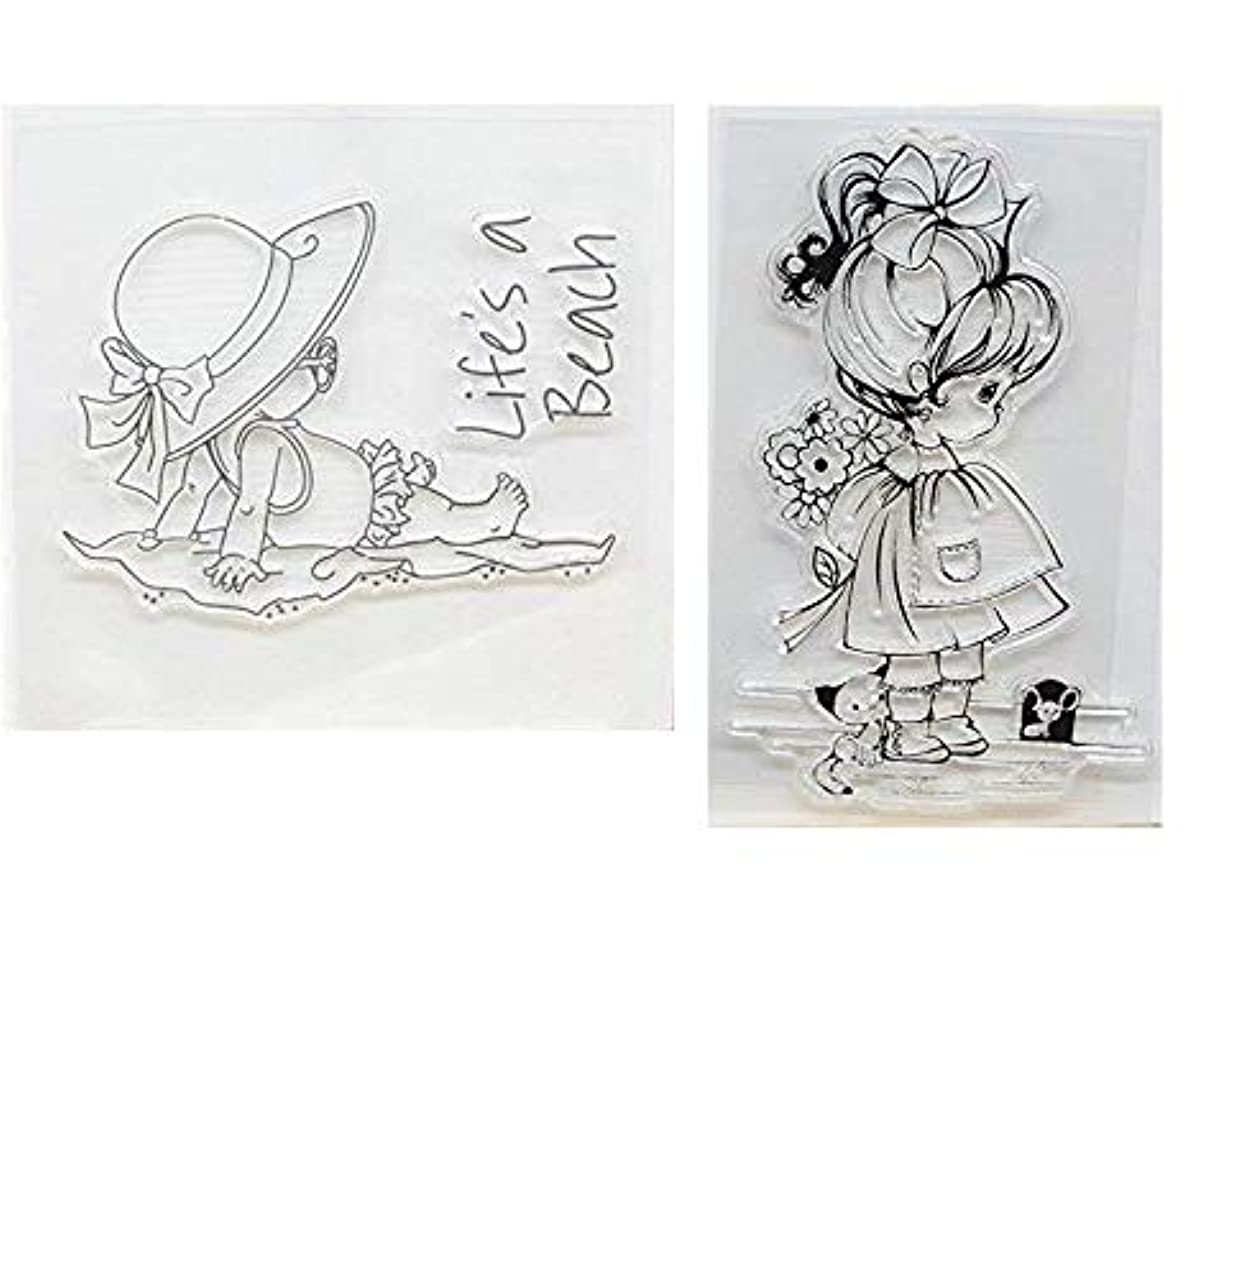 Welcome to Joyful Home 2pcs/Set Cute Girl Rubber Clear Stamp for Card Making Decoration and Scrapbooking